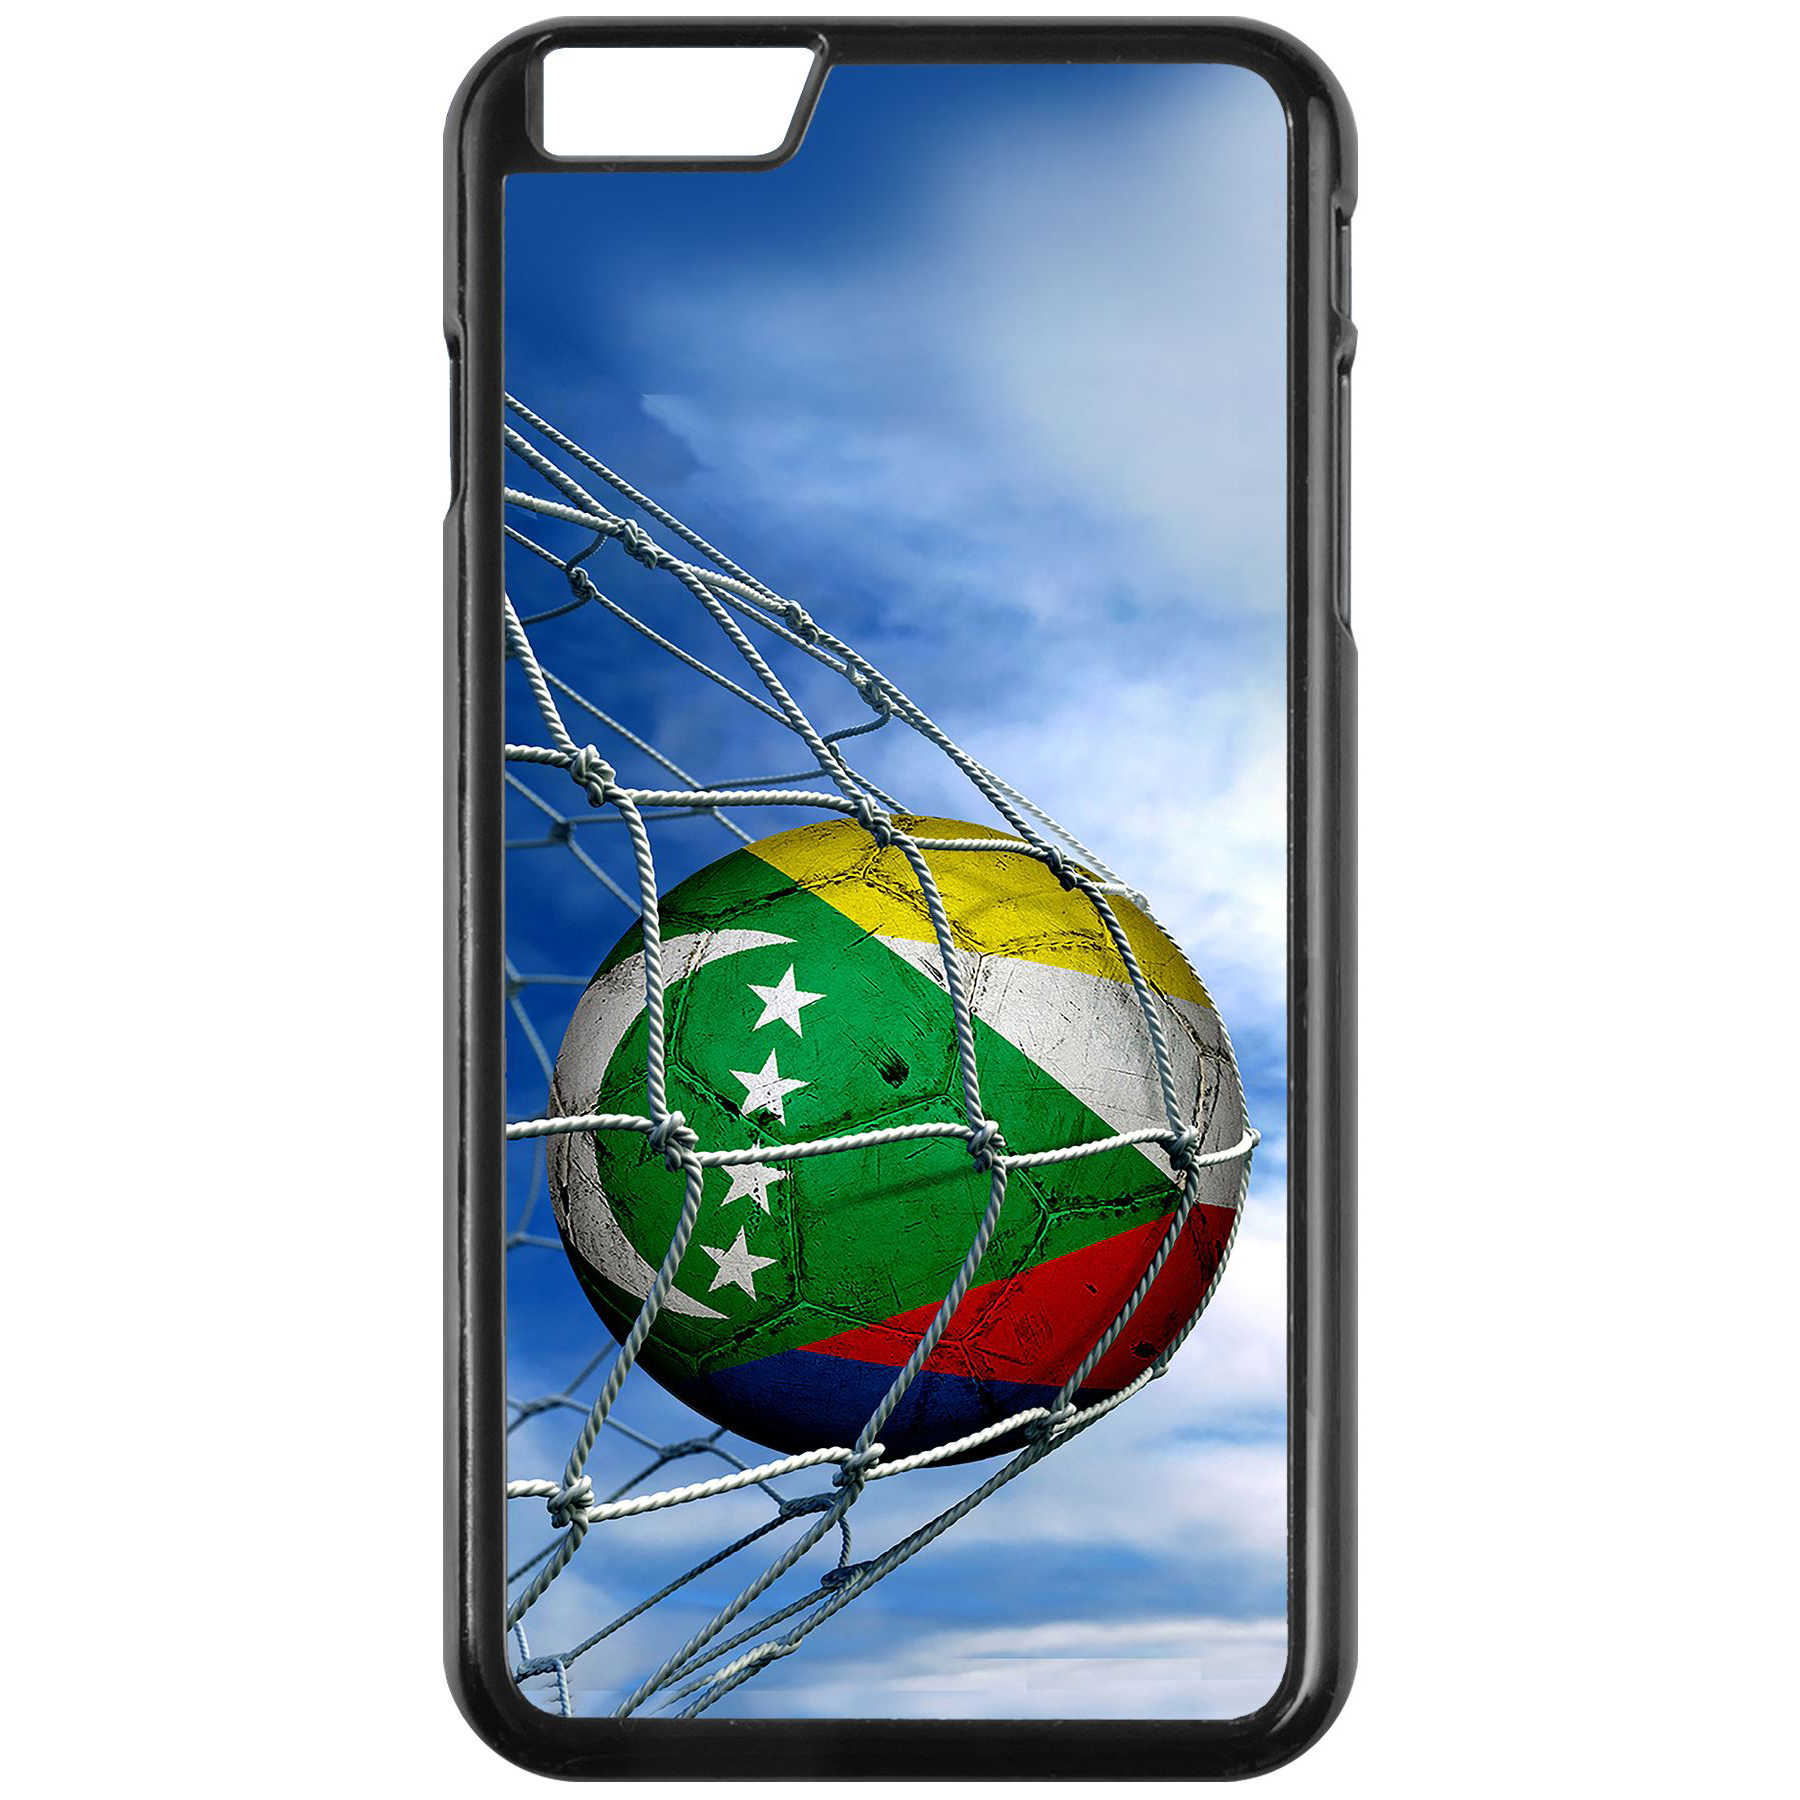 Apple-iPhone-Case-with-Flag-of-Comoros-Comorian-Many-Design-Options thumbnail 95